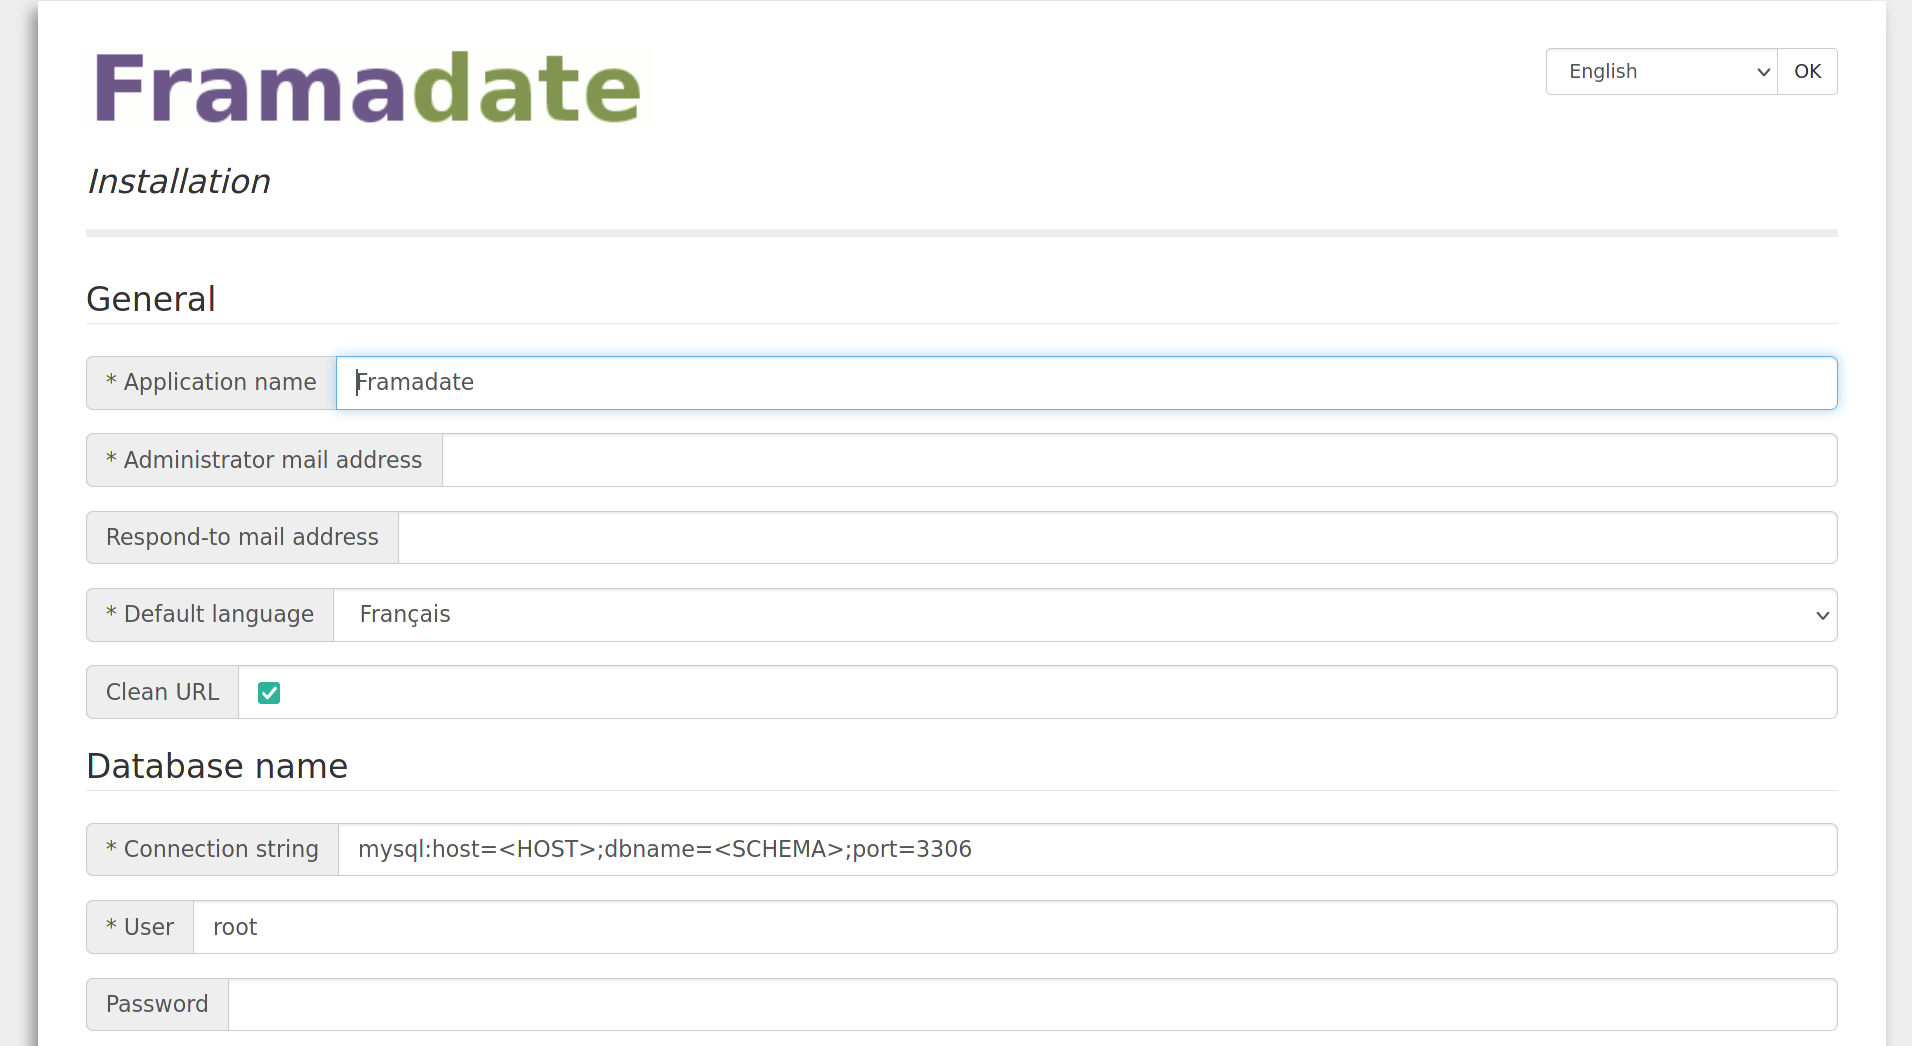 Screenshot of the Framadate installation process with many form fields to be filled in.